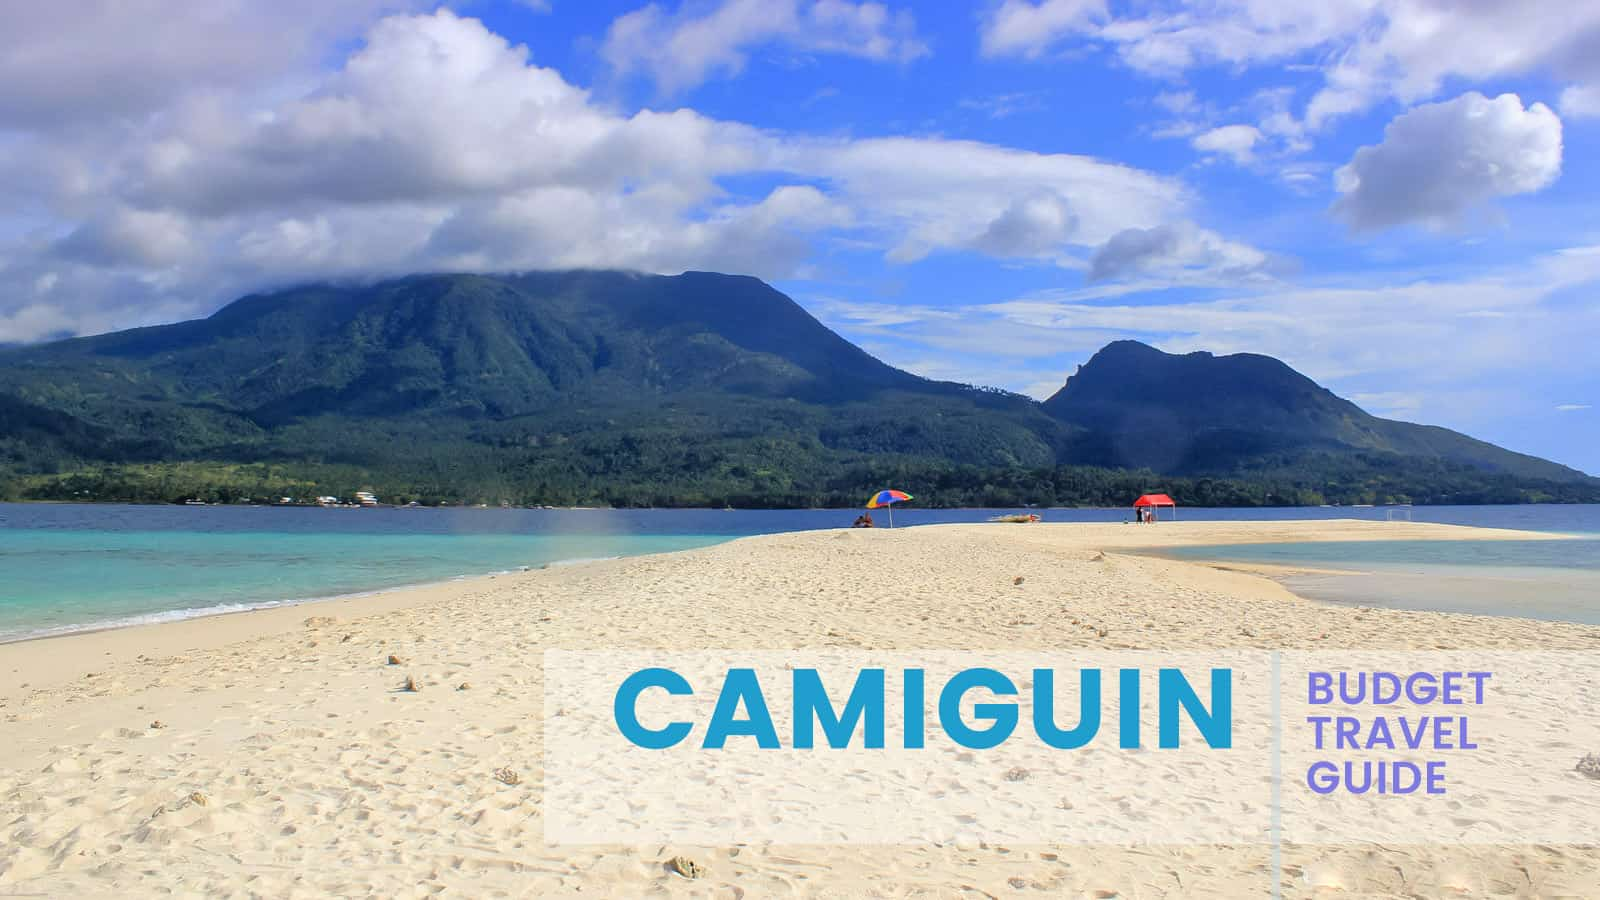 CAMIGUIN: Budget Travel Guide